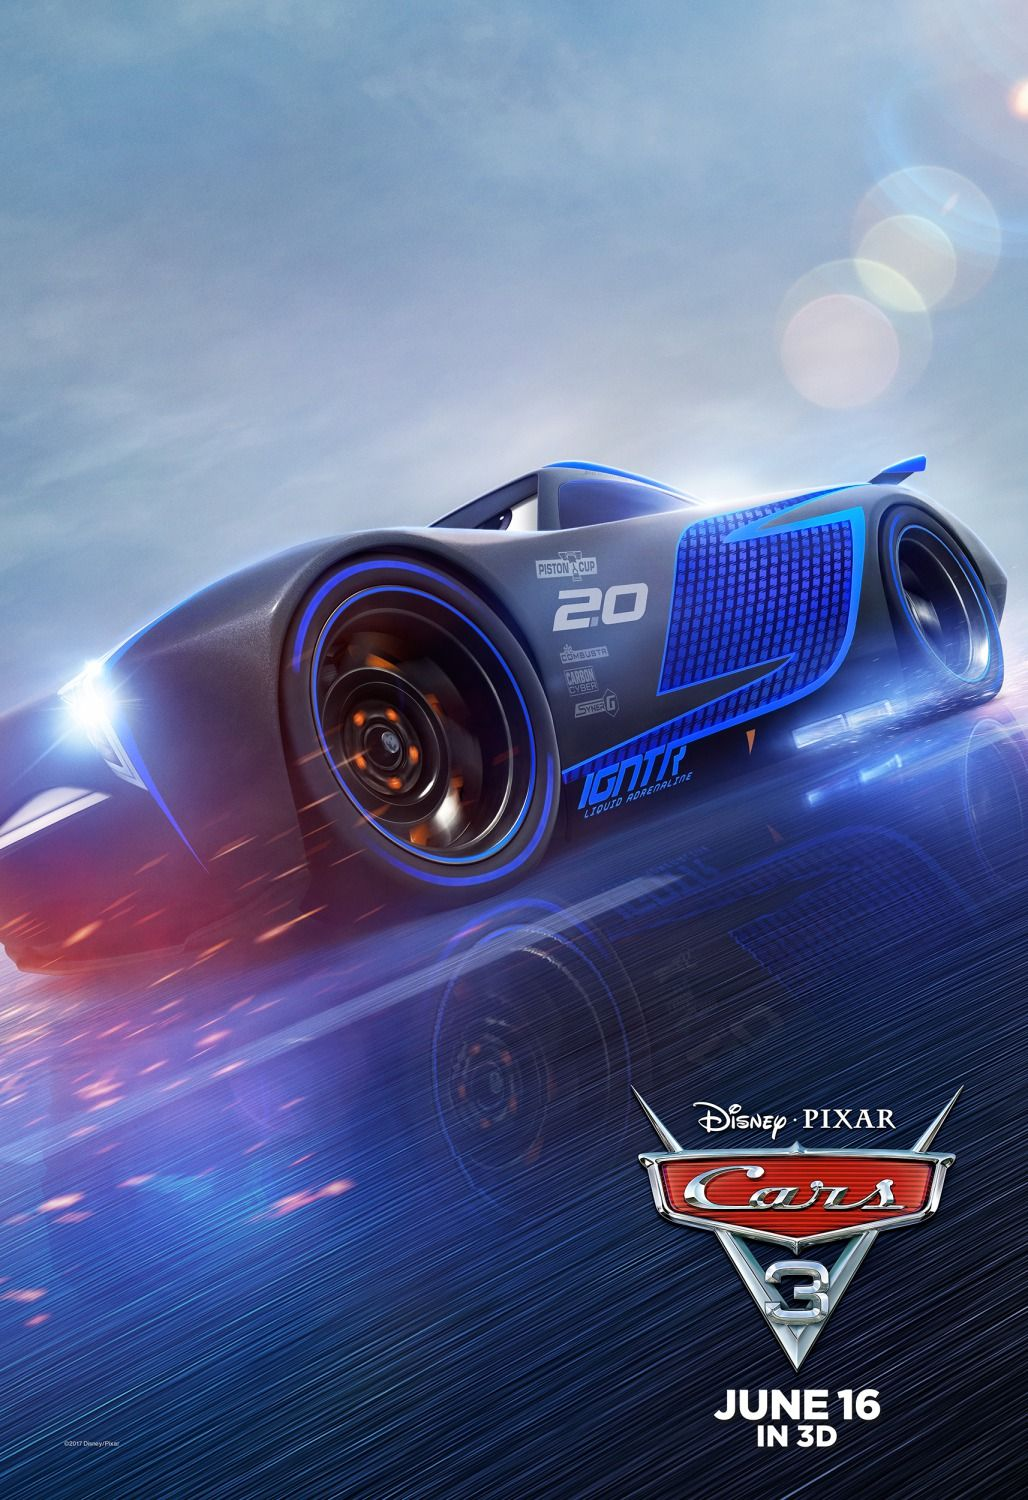 Extra Large Movie Poster Image for Cars 3 (12 of 12